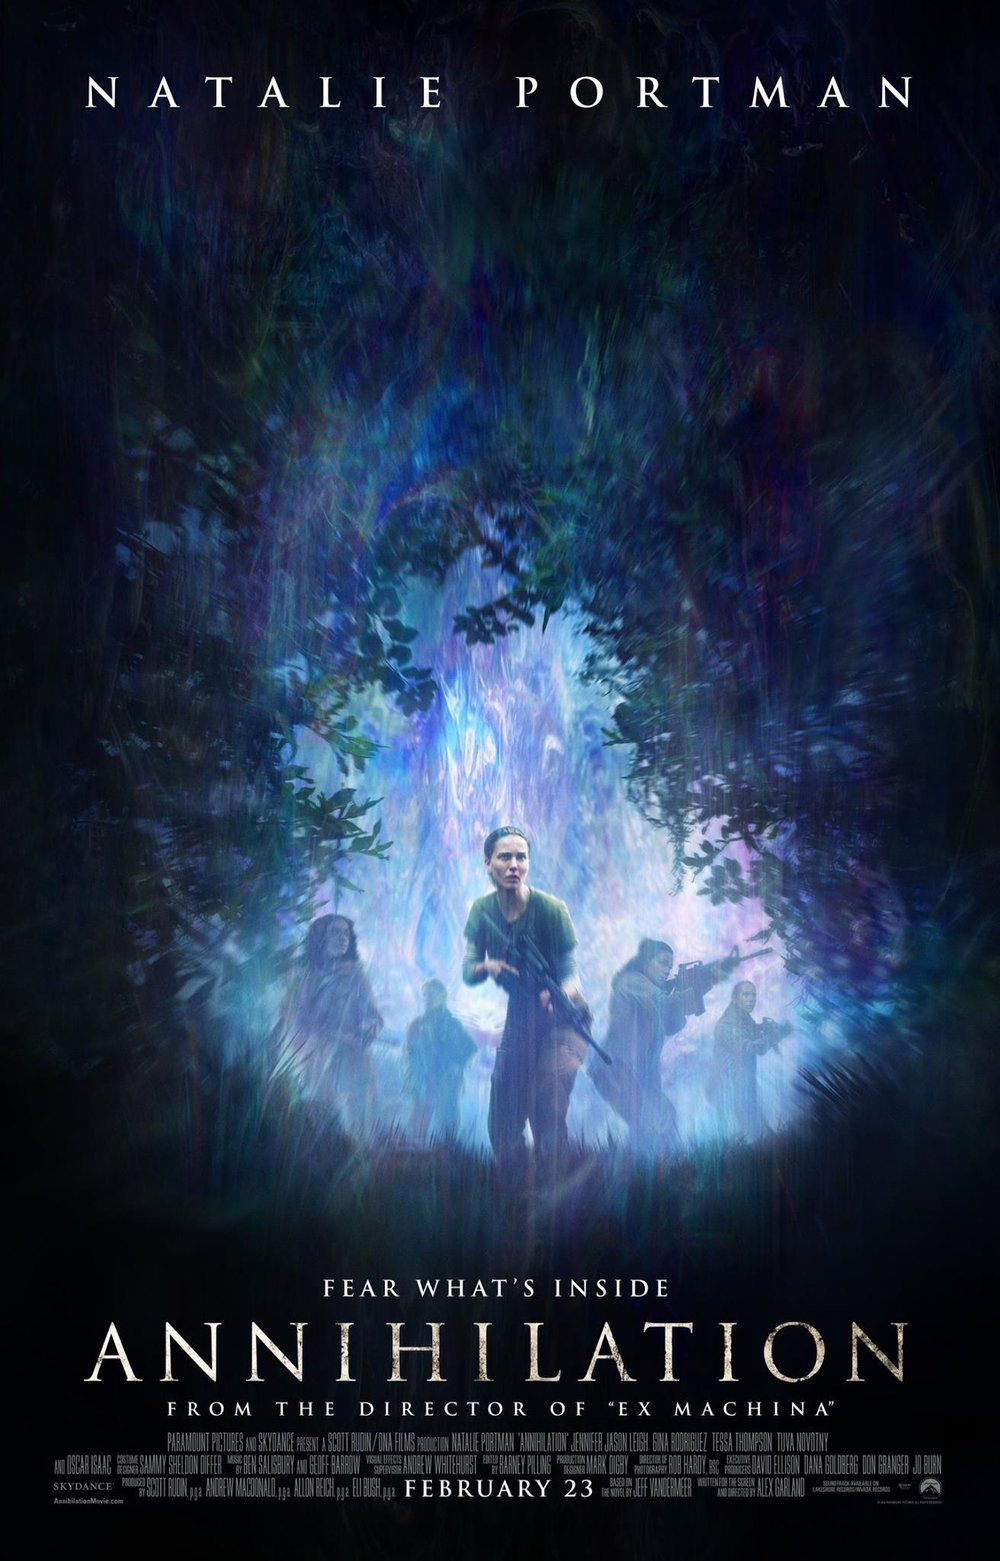 Annihilation-new-poster-1.jpg